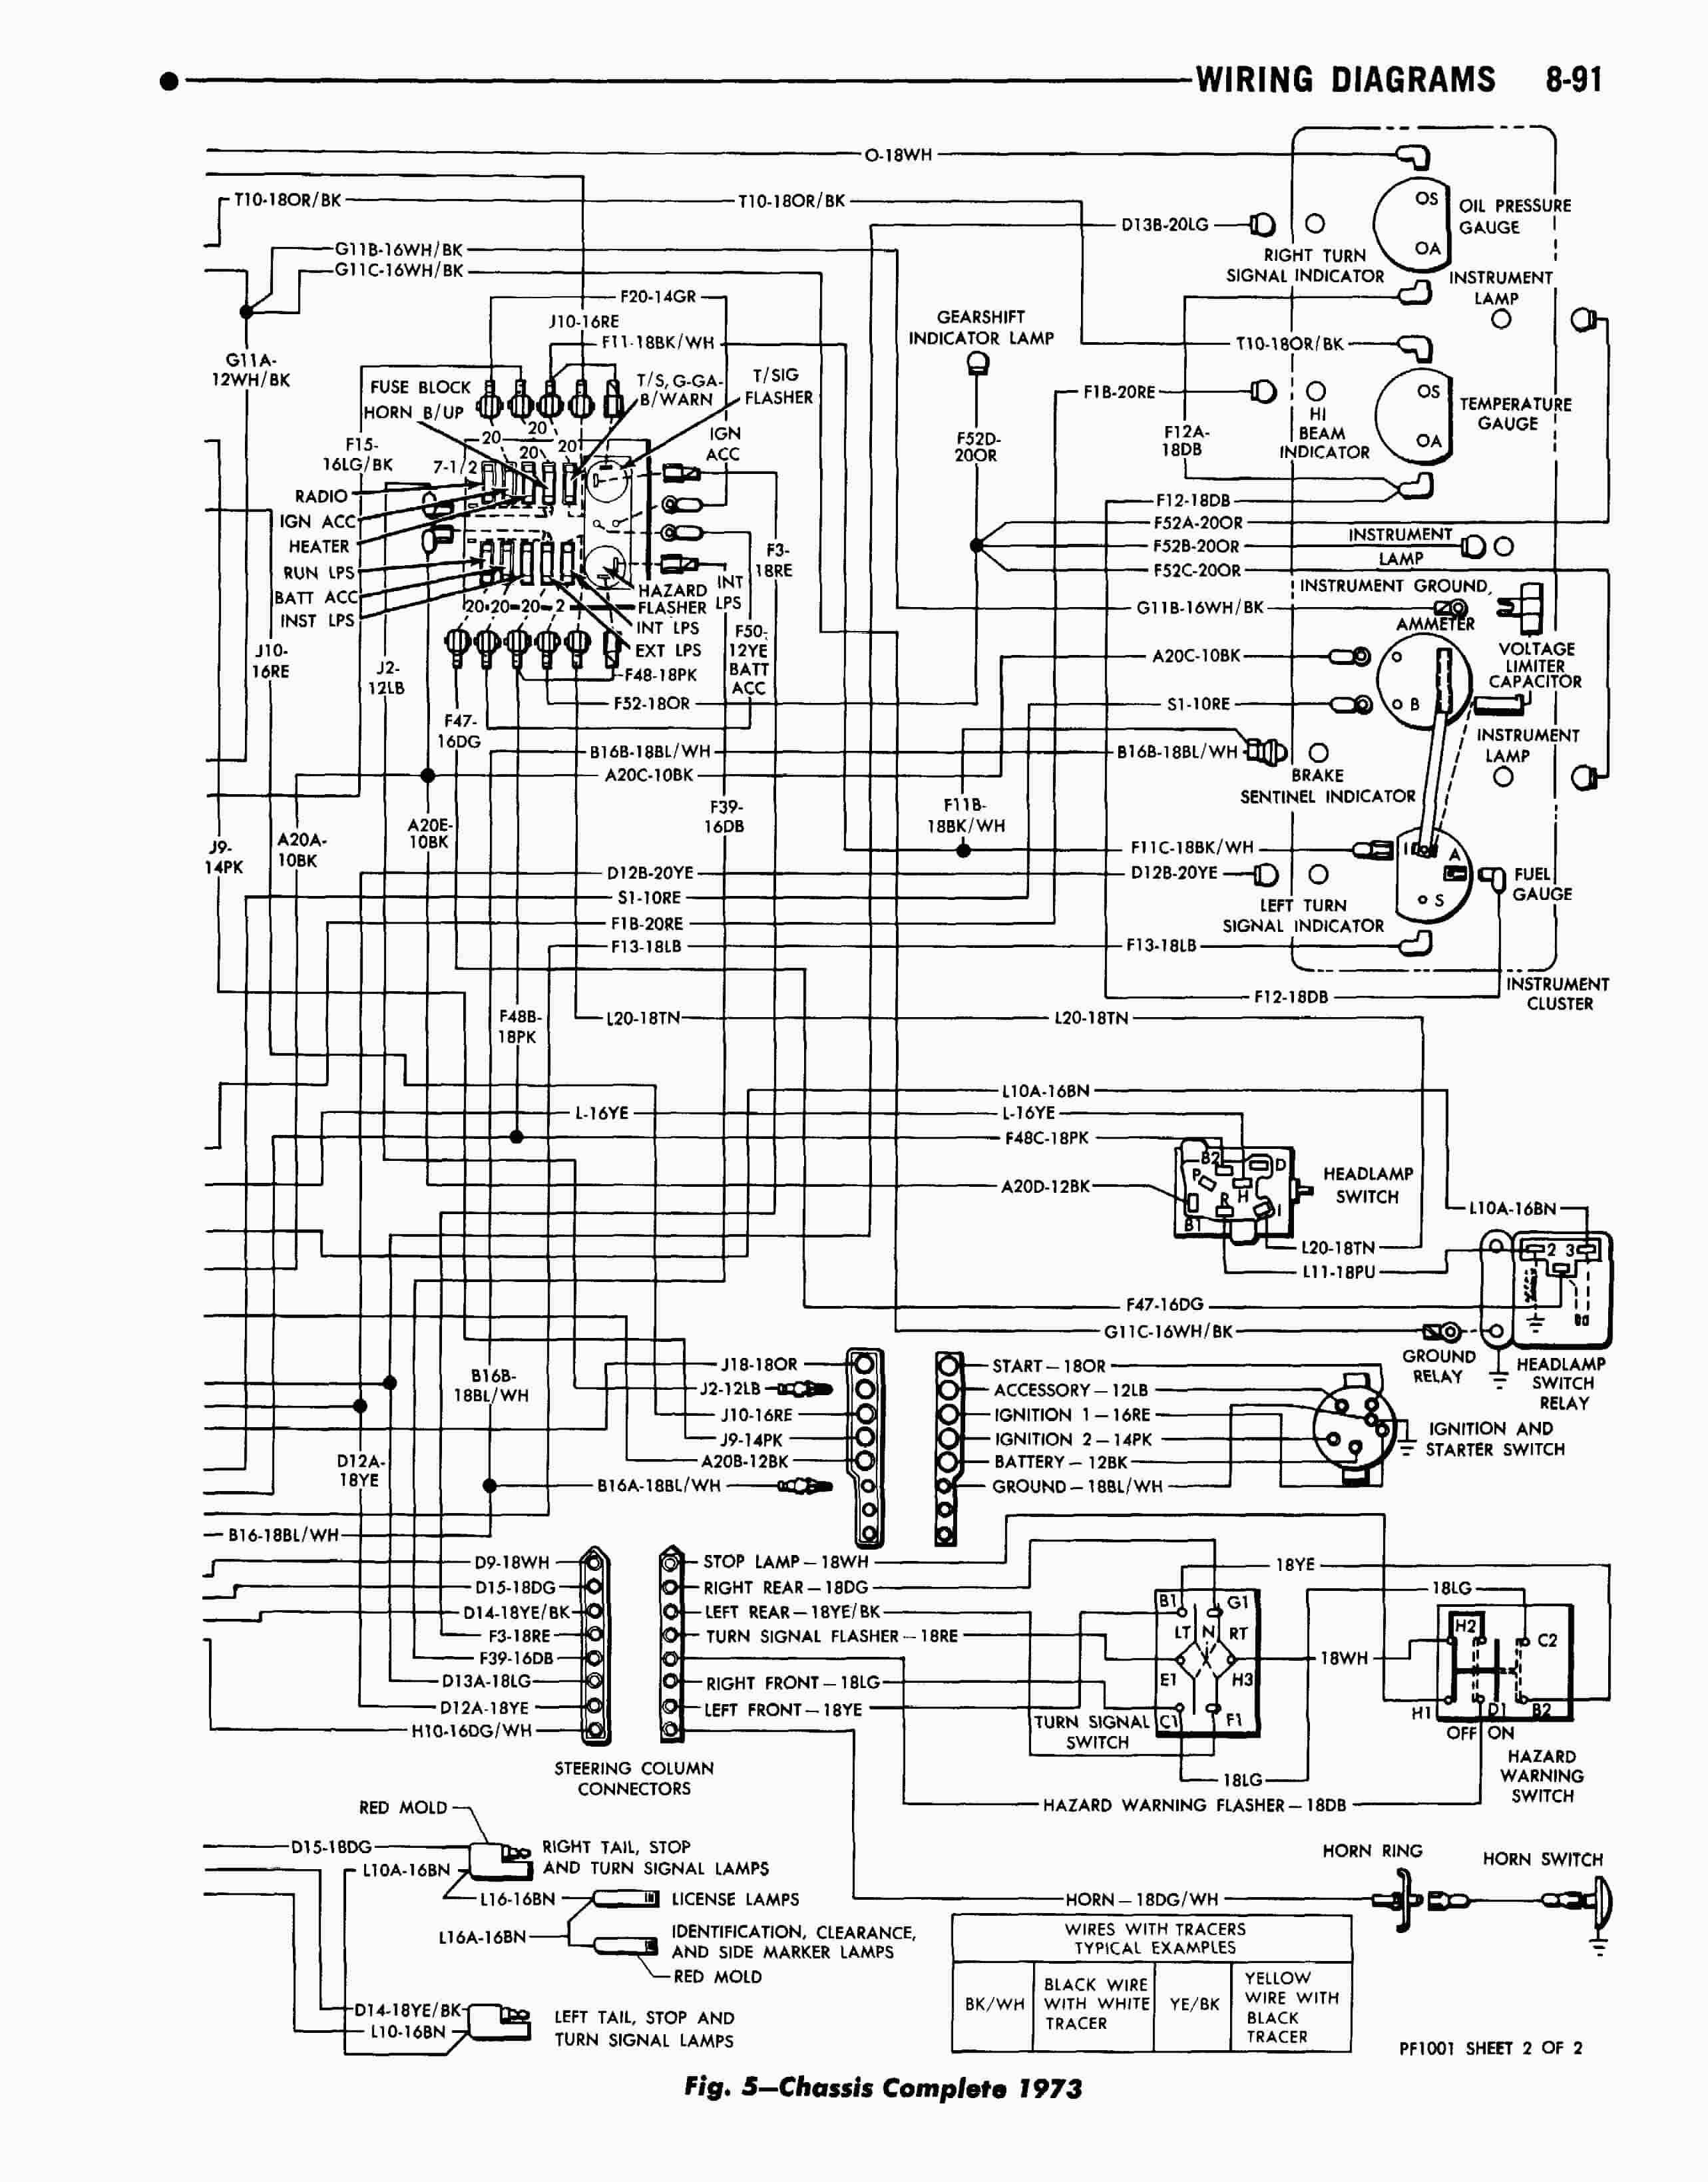 Ford F53 Wiring | Wiring Diagram - Ford F53 Motorhome Chassis Wiring Diagram